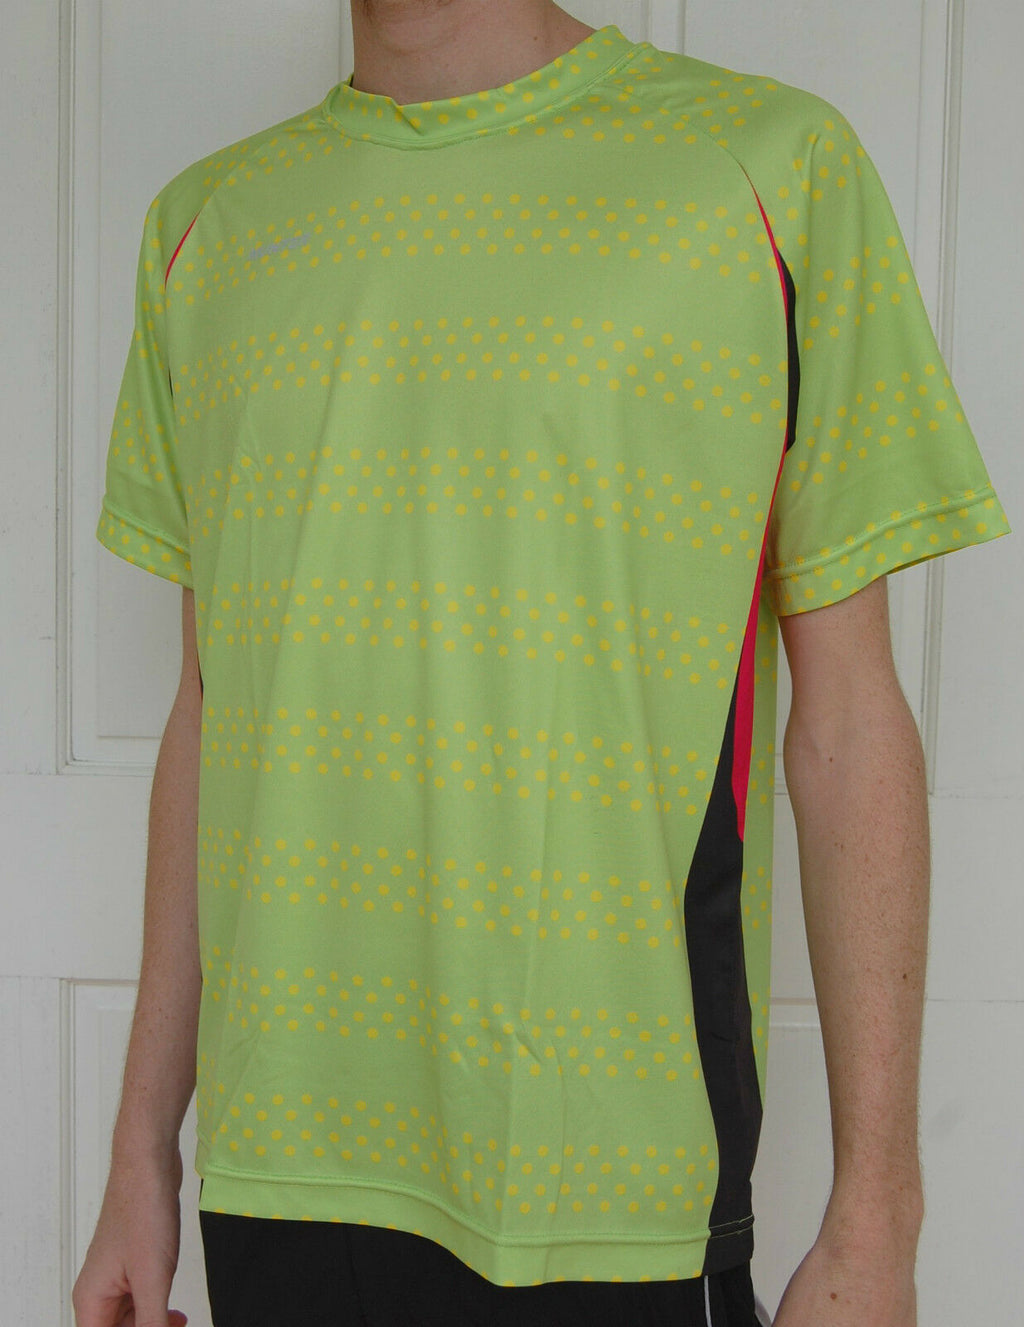 Munter Mens Fitness Sports Gym Run cycle shirt top size S M L Green*